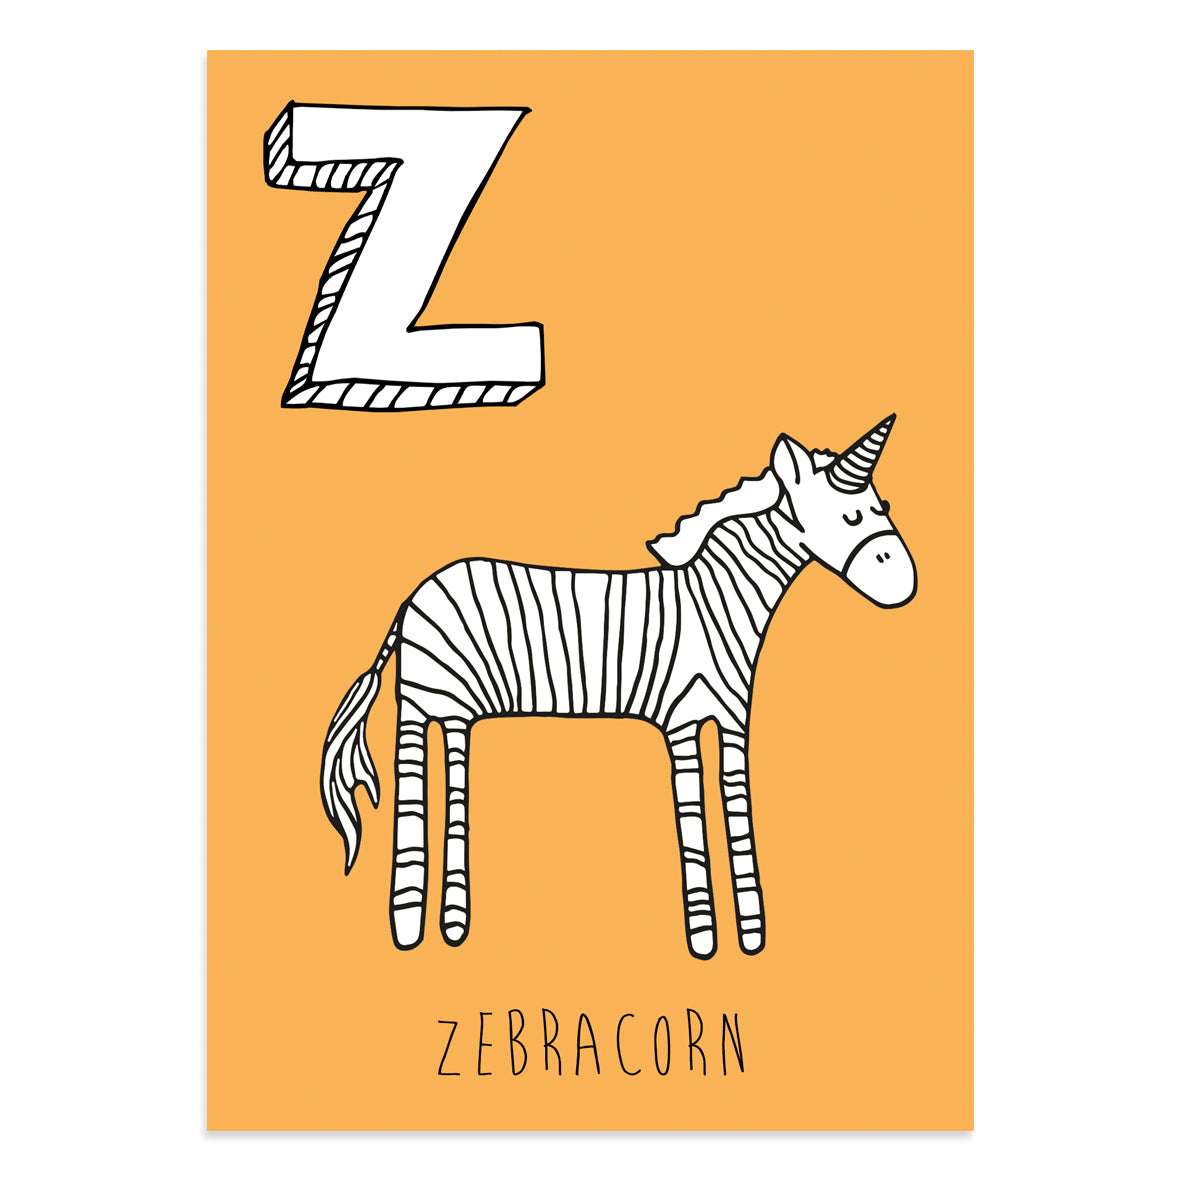 Unicorn postcard featuring the letter Z for zebracorn